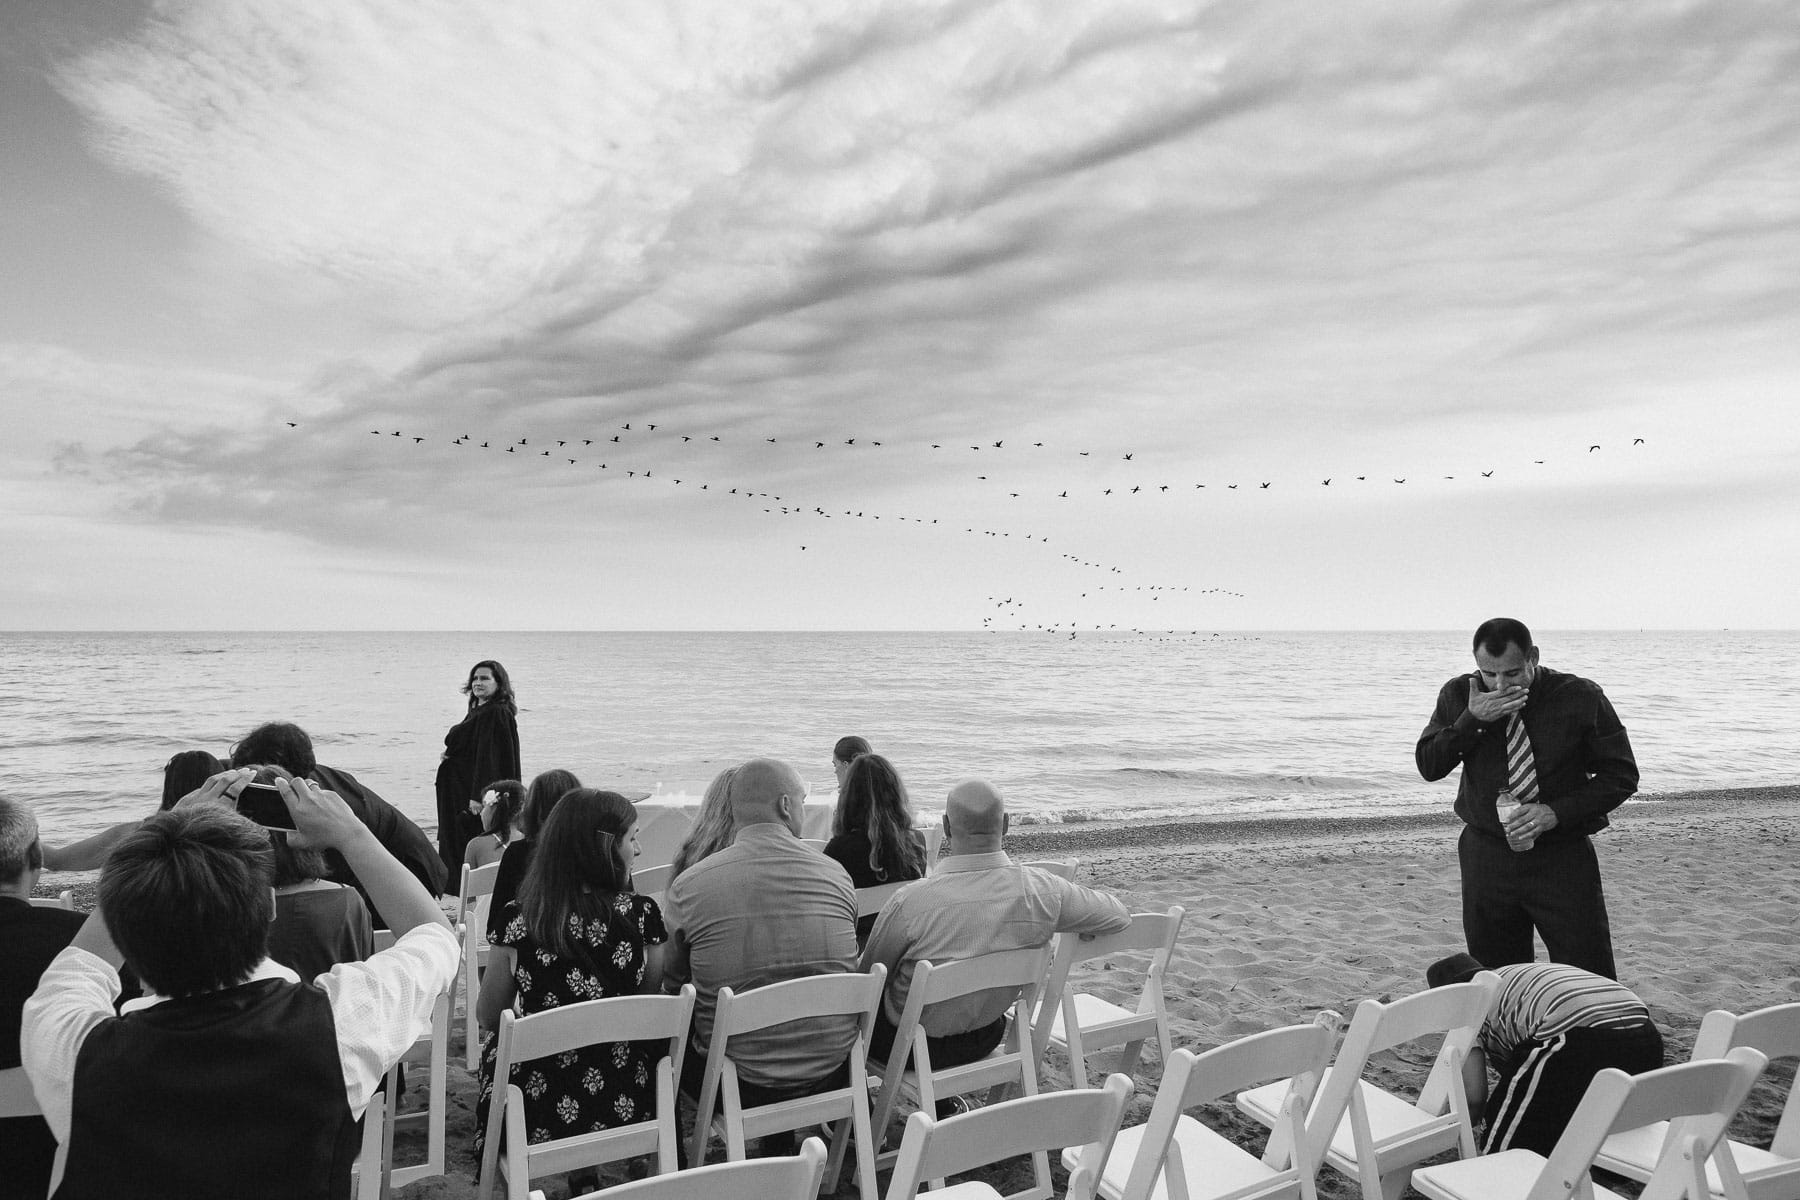 Migrating birds in sky at beach wedding, Artscape, Toronto Island wedding